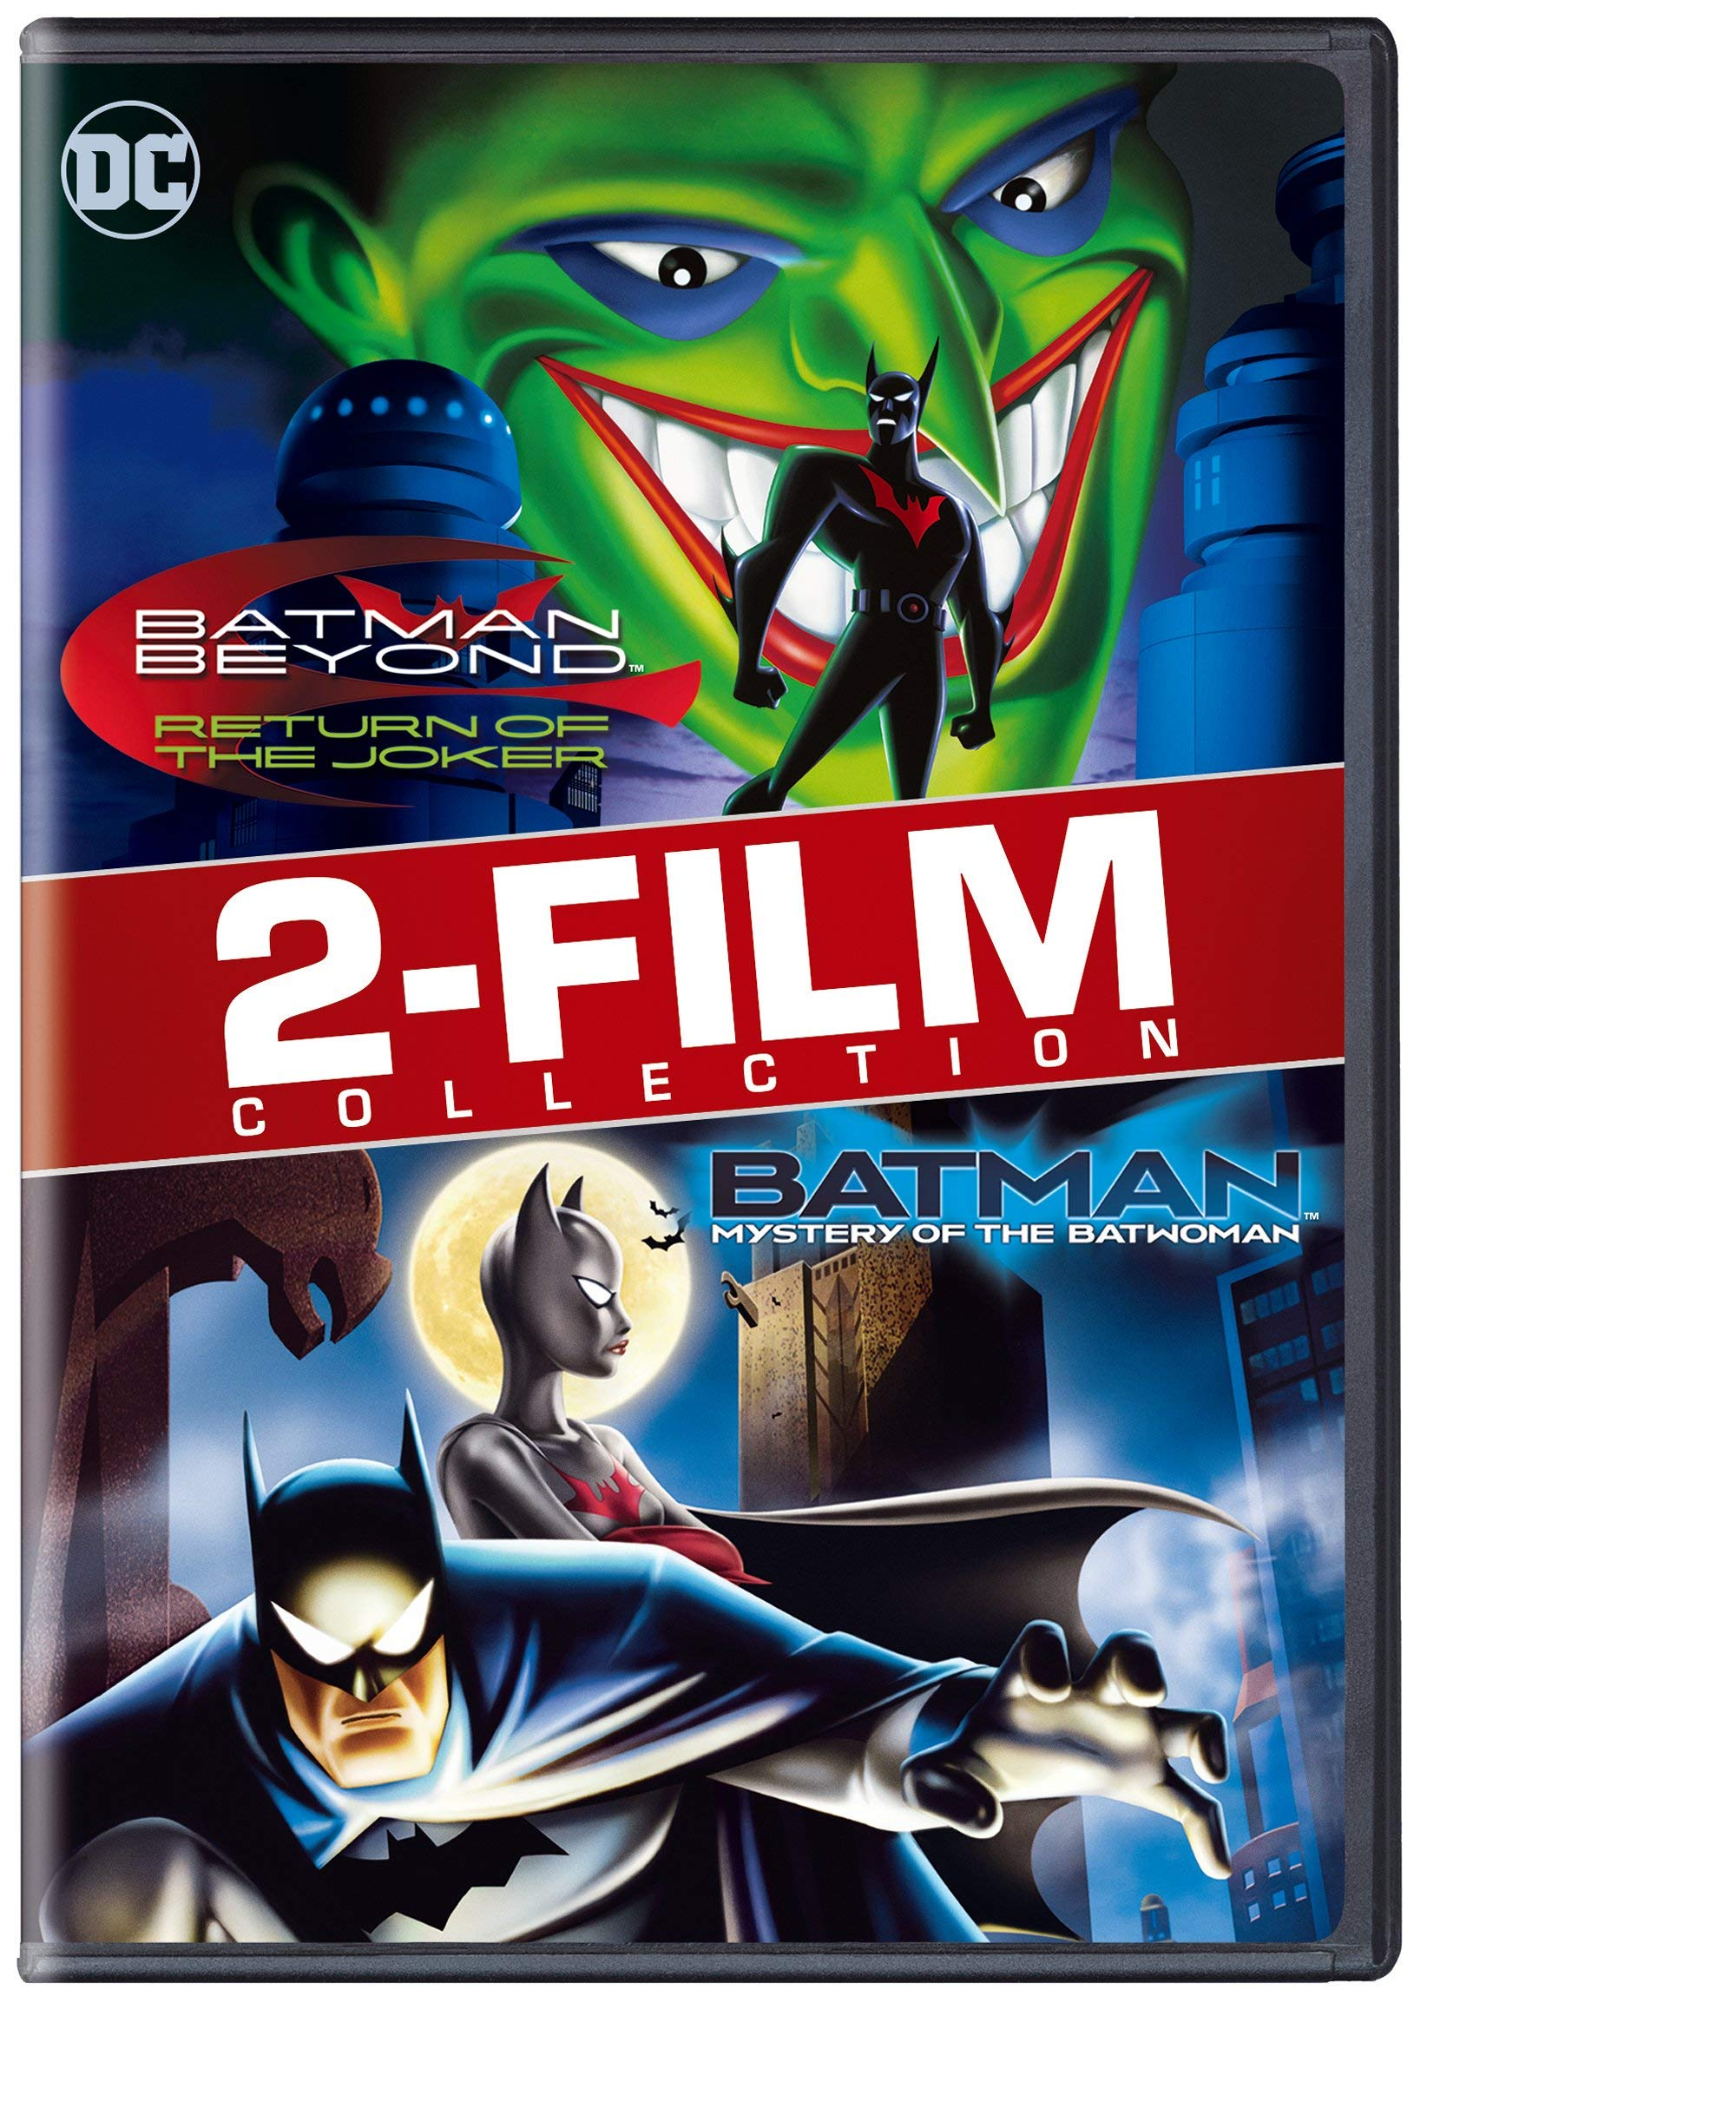 DVD : Batman Beyond: The Return Of The Joker/ Batman: Mystery Of The Batwoman (Repackaged, Eco Amaray Case)